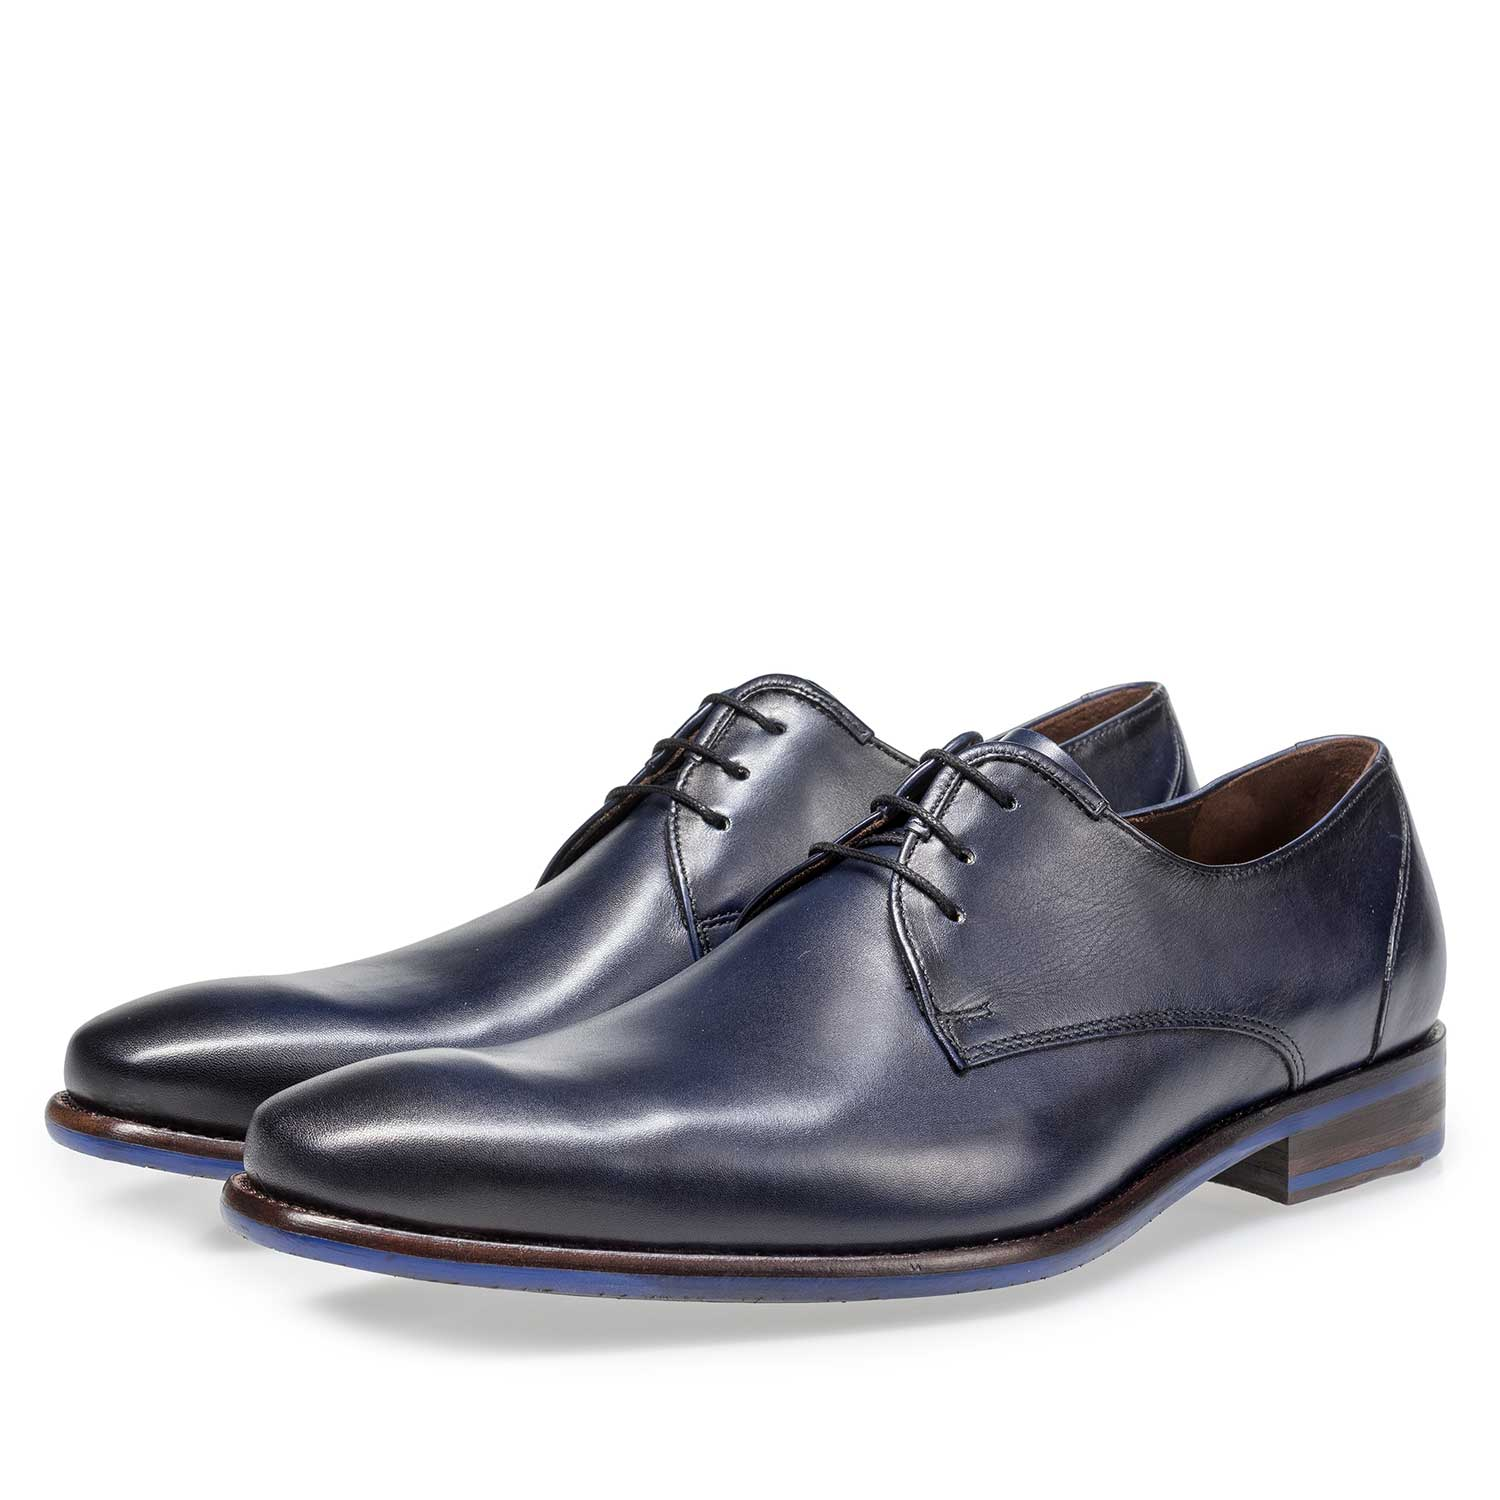 18111/01 - Dark blue calf leather lace shoe